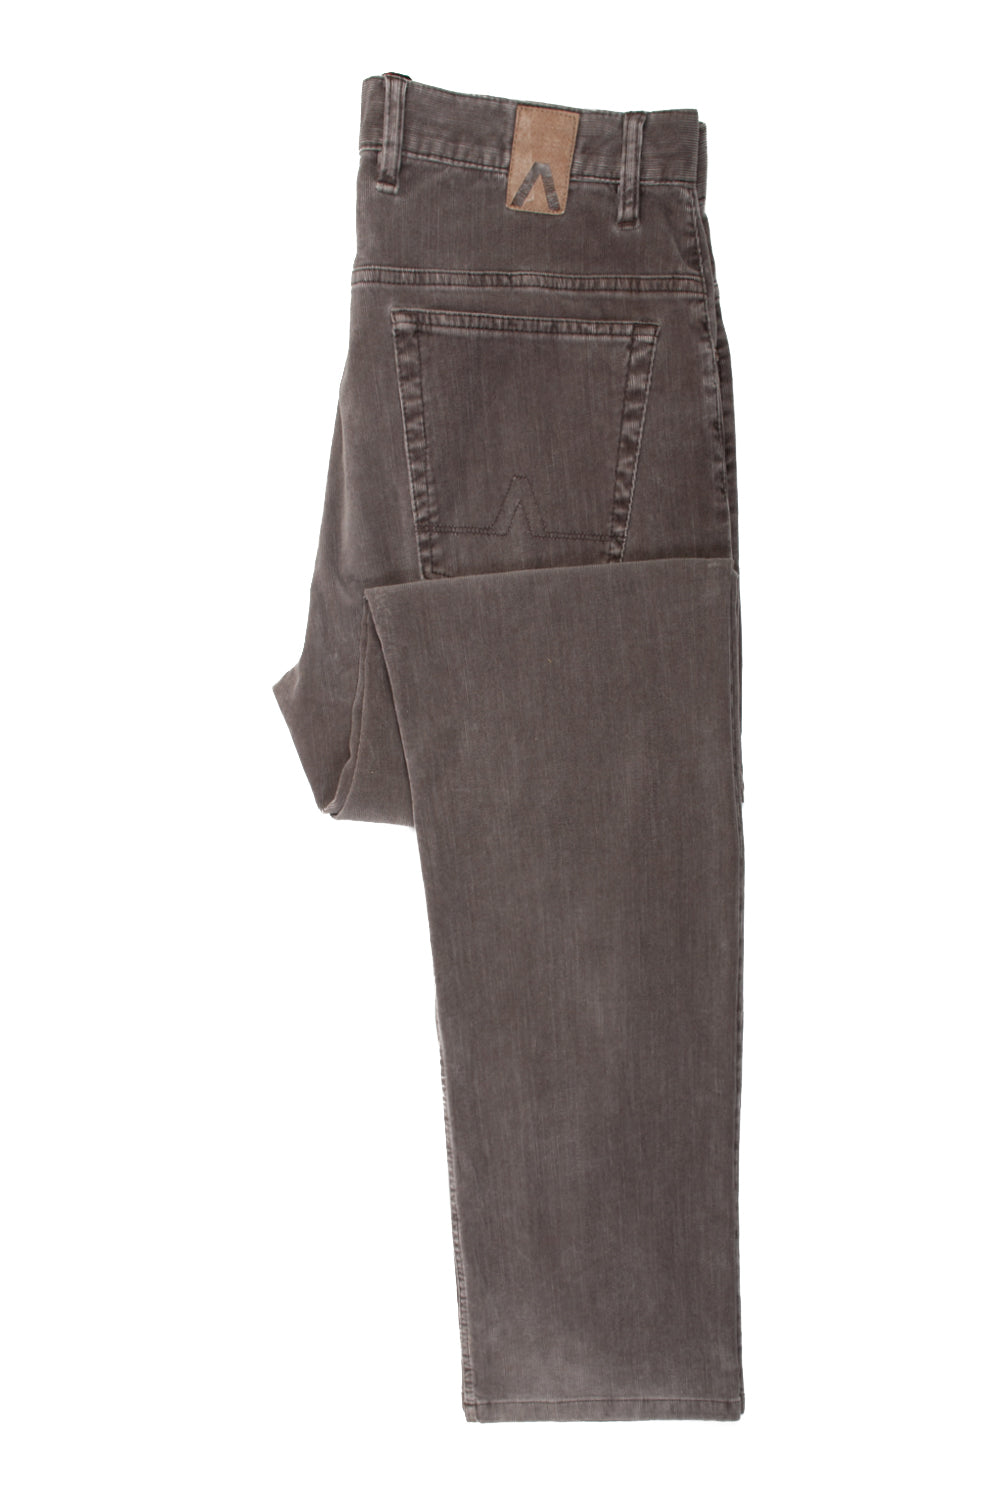 Alberto Desert Grey Rock Stretch Corduroy Pants for Luxmrkt.com Menswear Consignment Edmonton